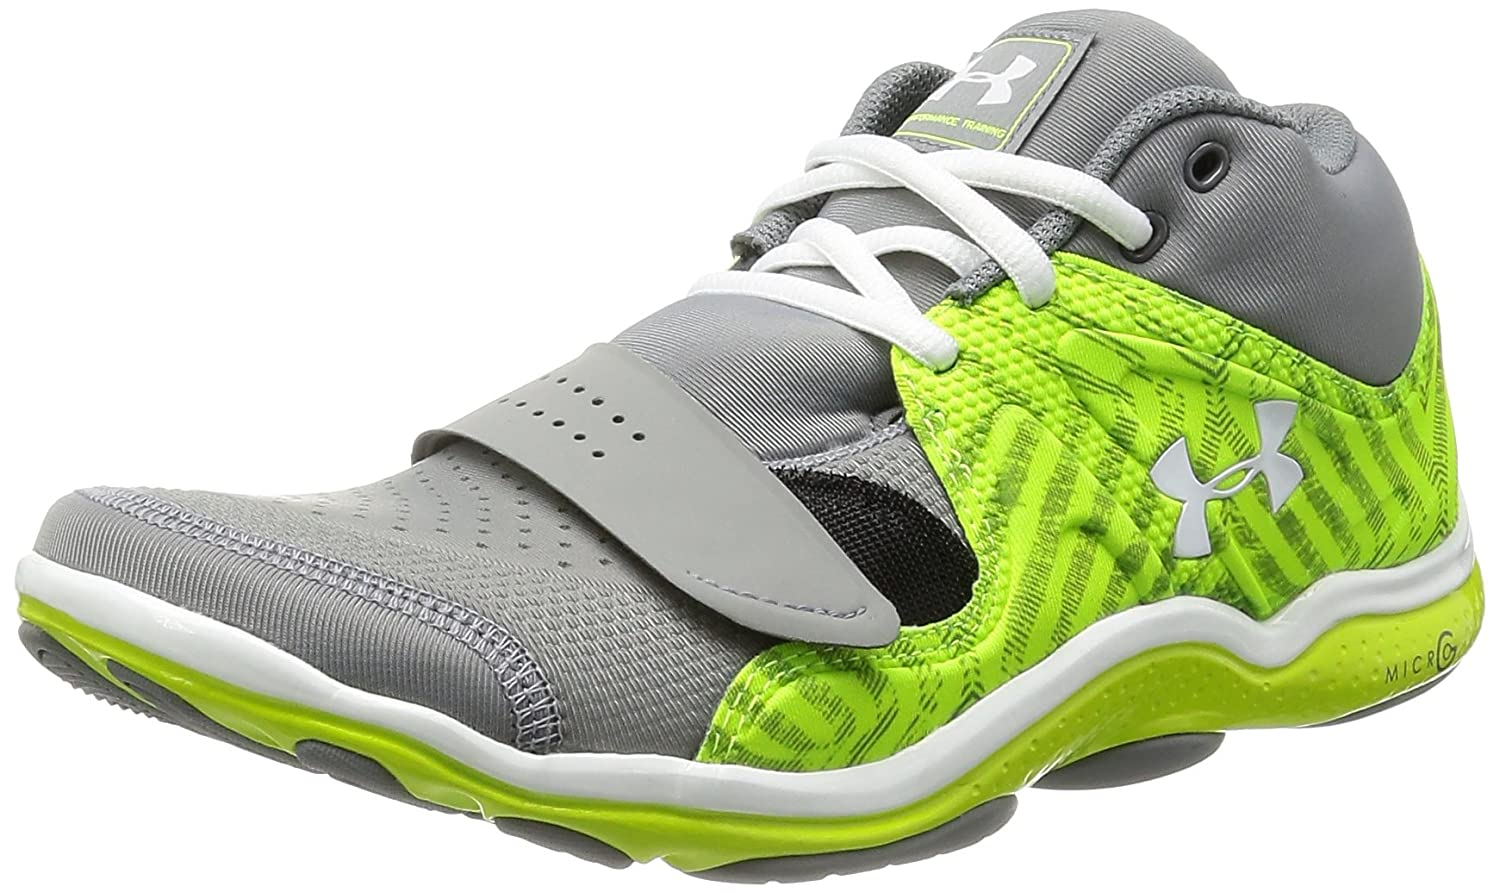 under armour micro g renegade women's